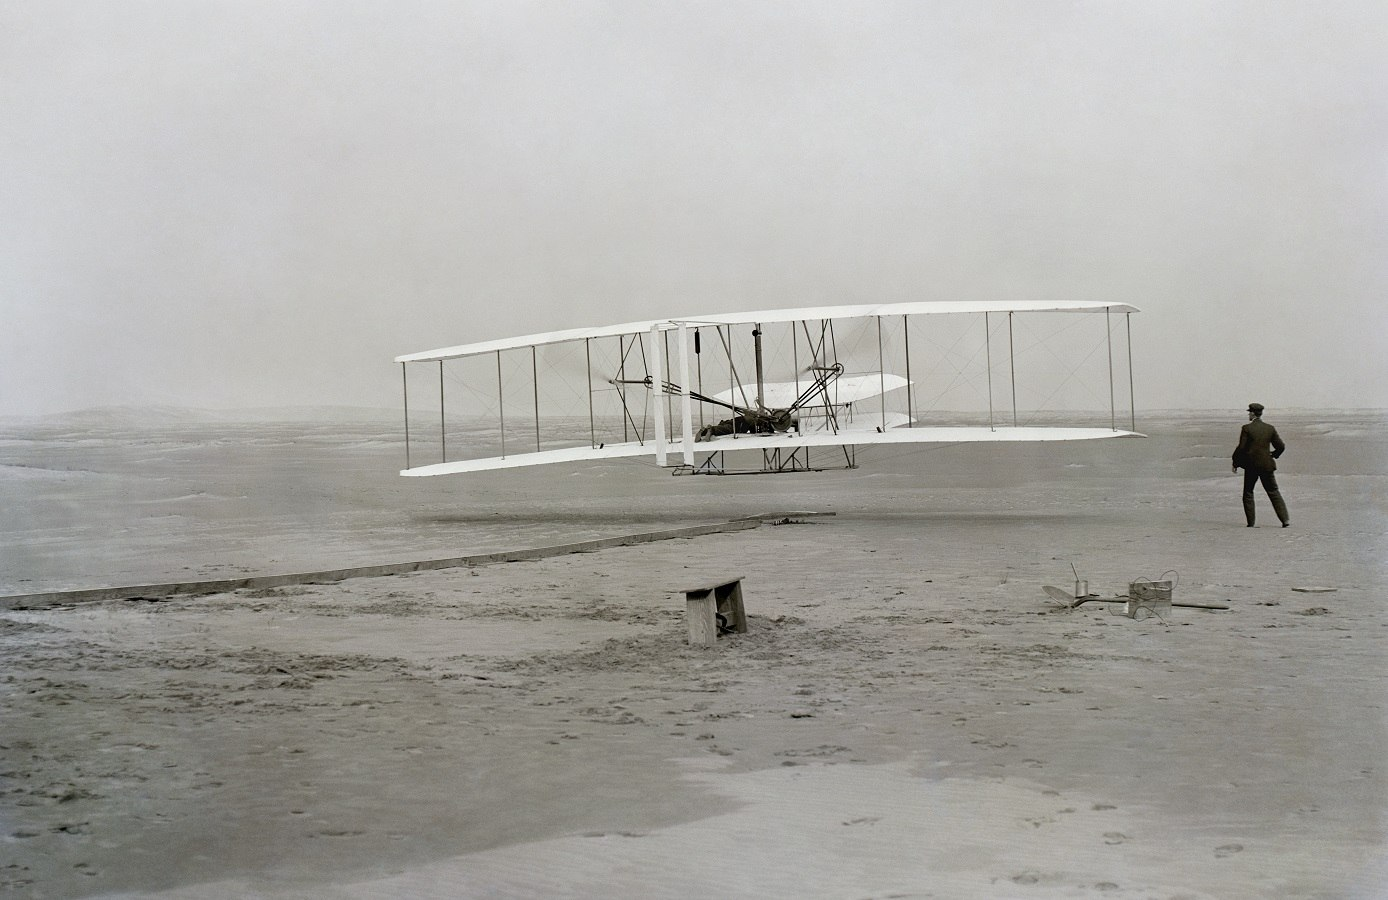 The historic photo captured by John T. Daniels of the Wright Brothers powered first flight - First Flight: the Wright Brothers